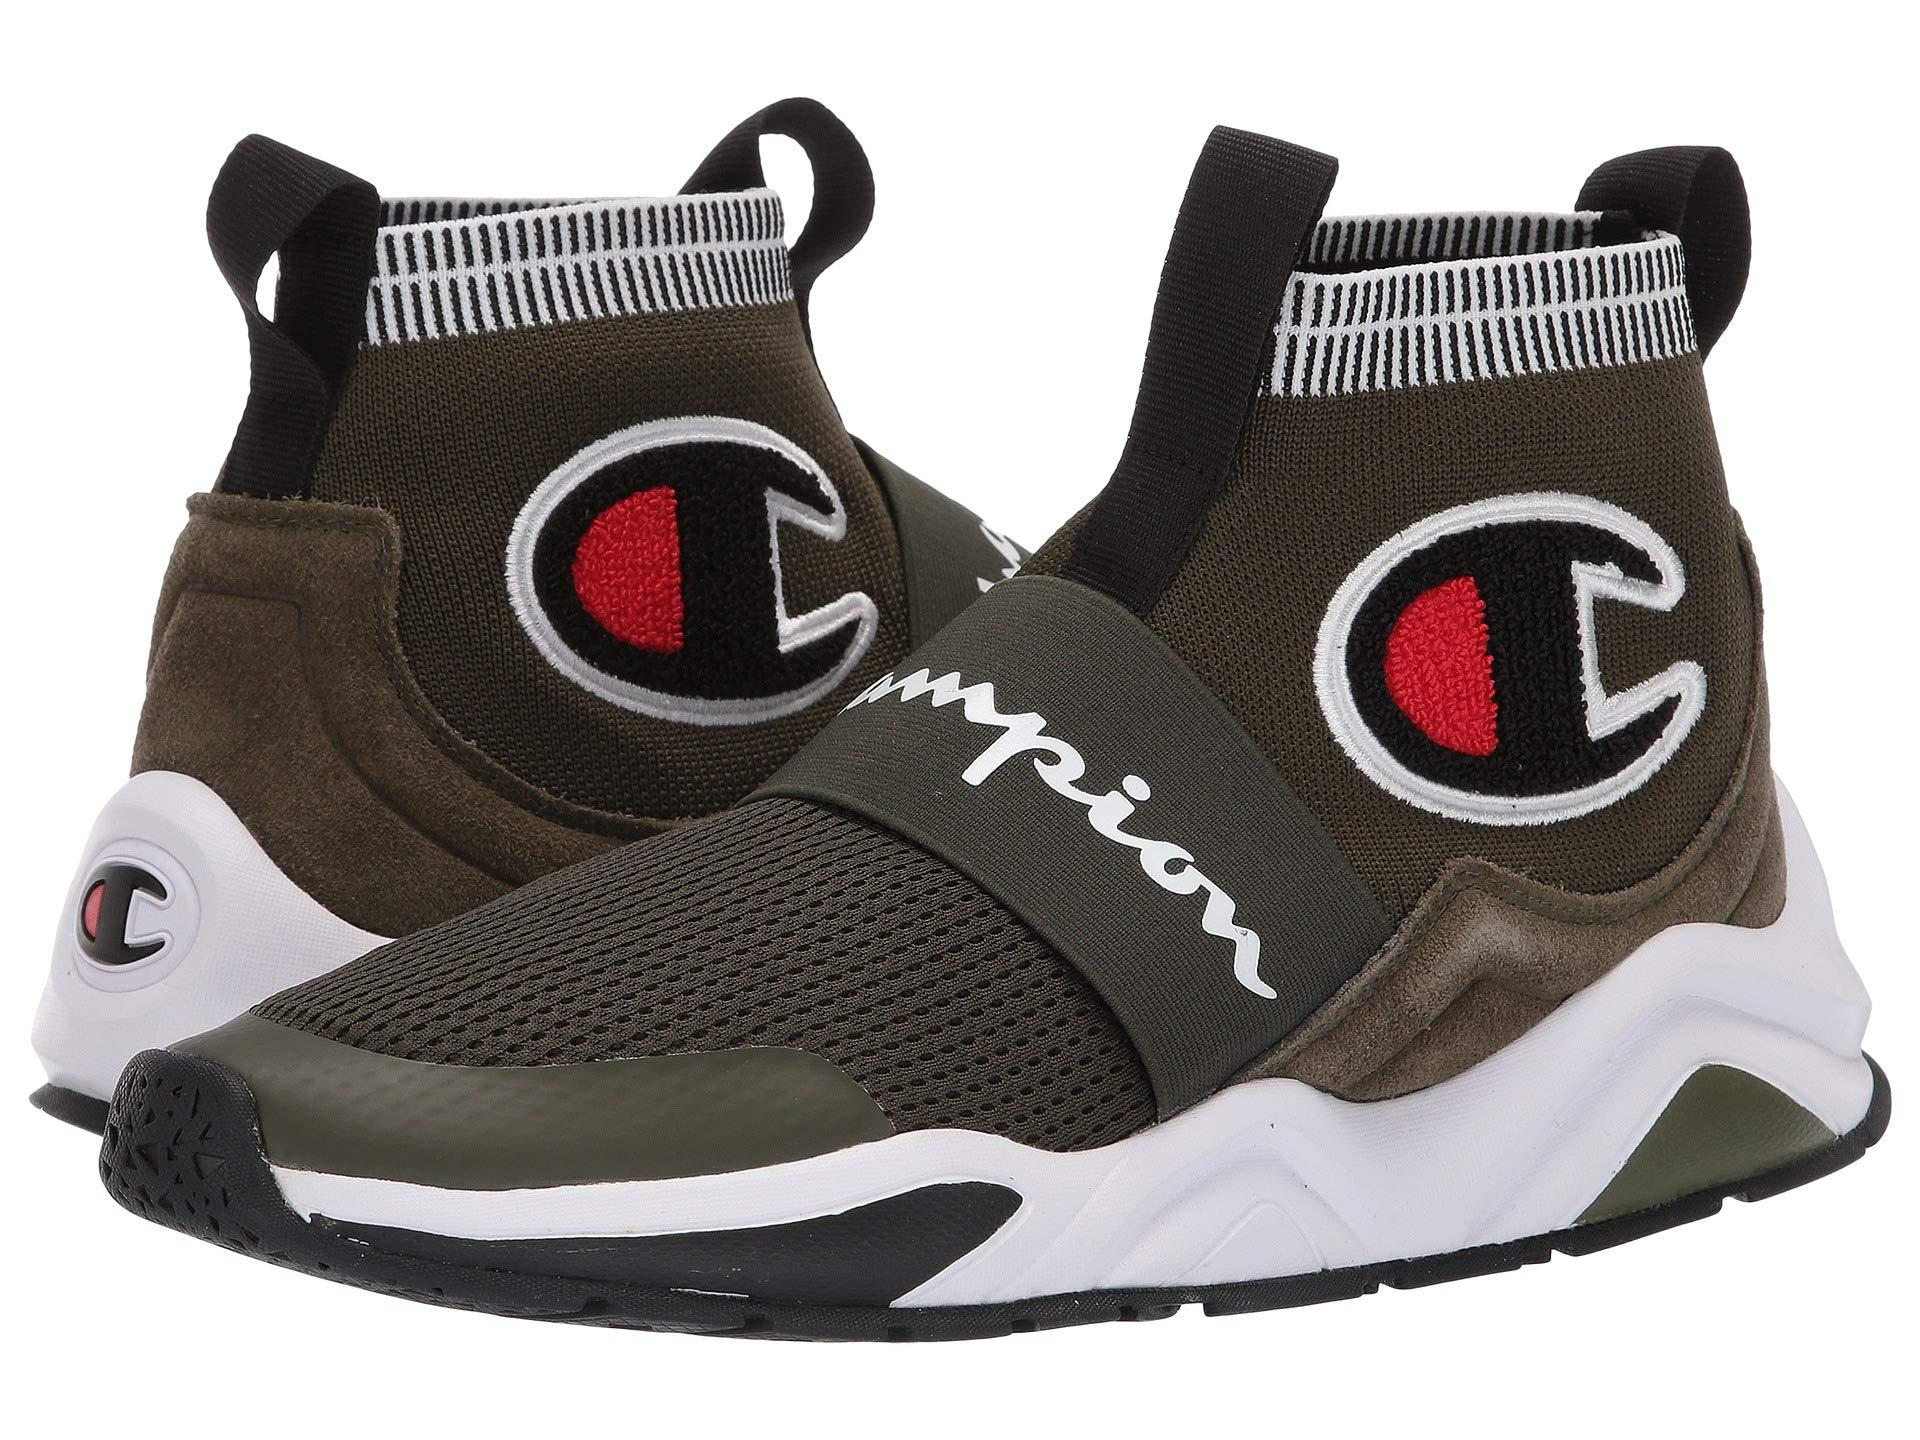 1e2ae7839 Lyst champion rally pro hiker green mens shoes in black for men jpg  1920x1440 Champion shoes